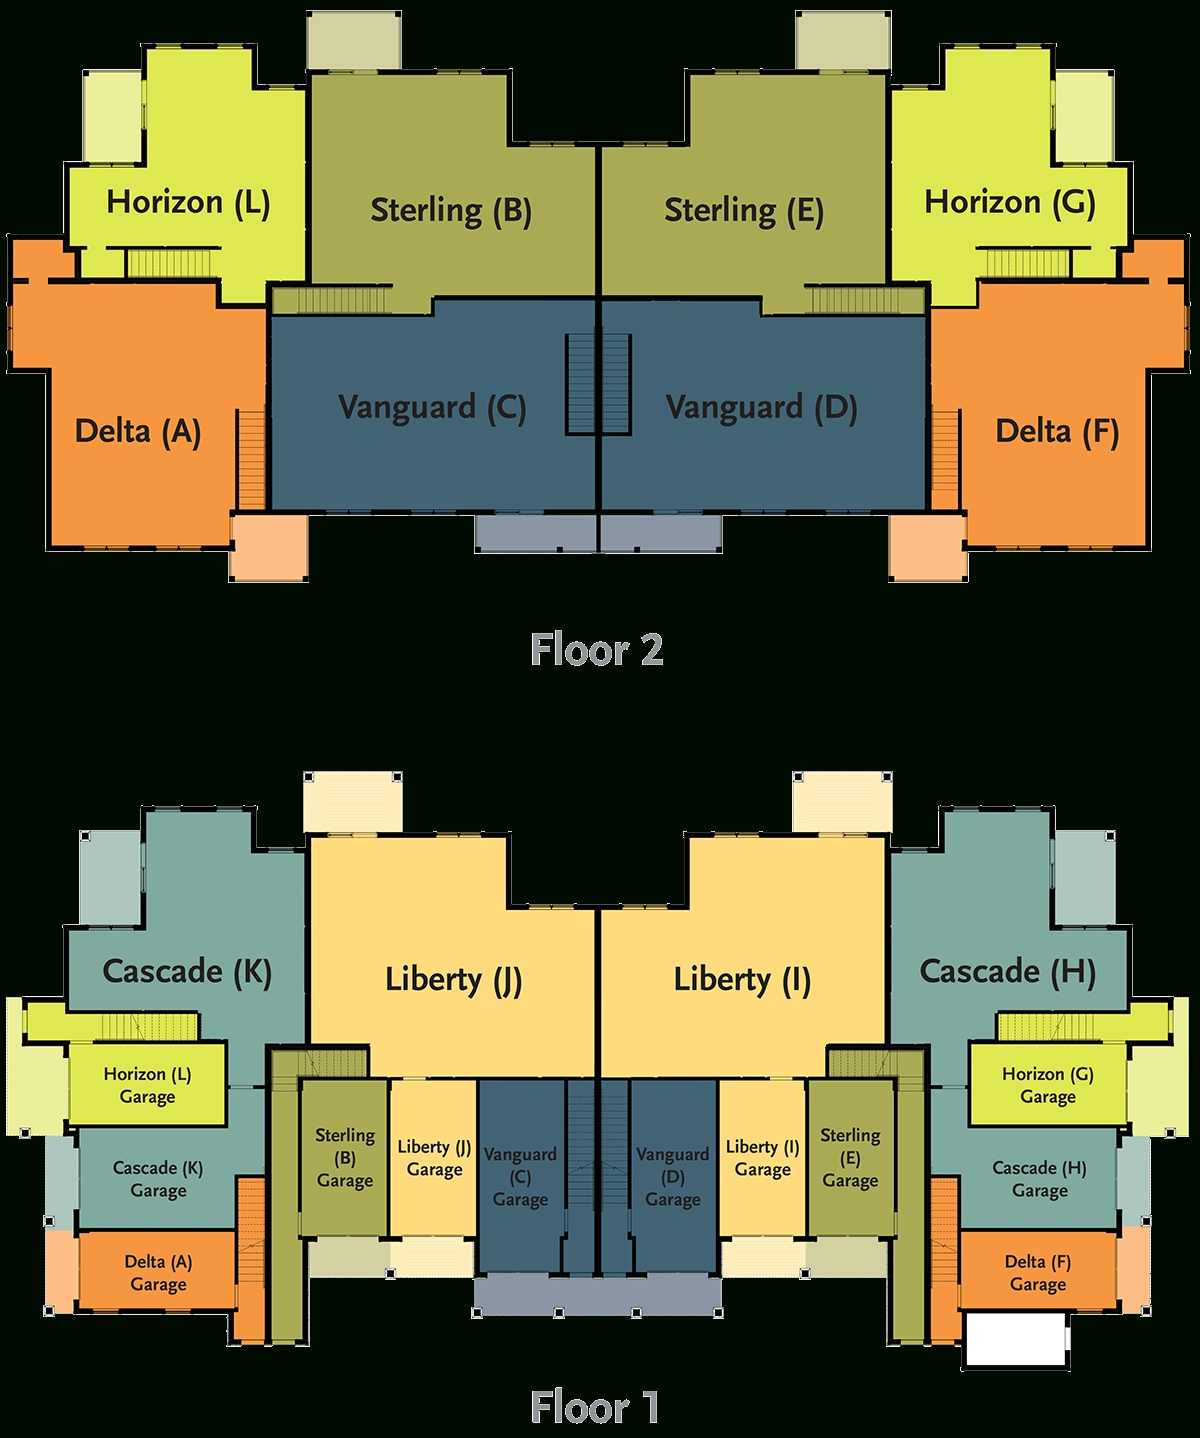 Garden Apartments Building Layout - Deerfield Place, Utica, Ny with Garden Apartment Floor Plans